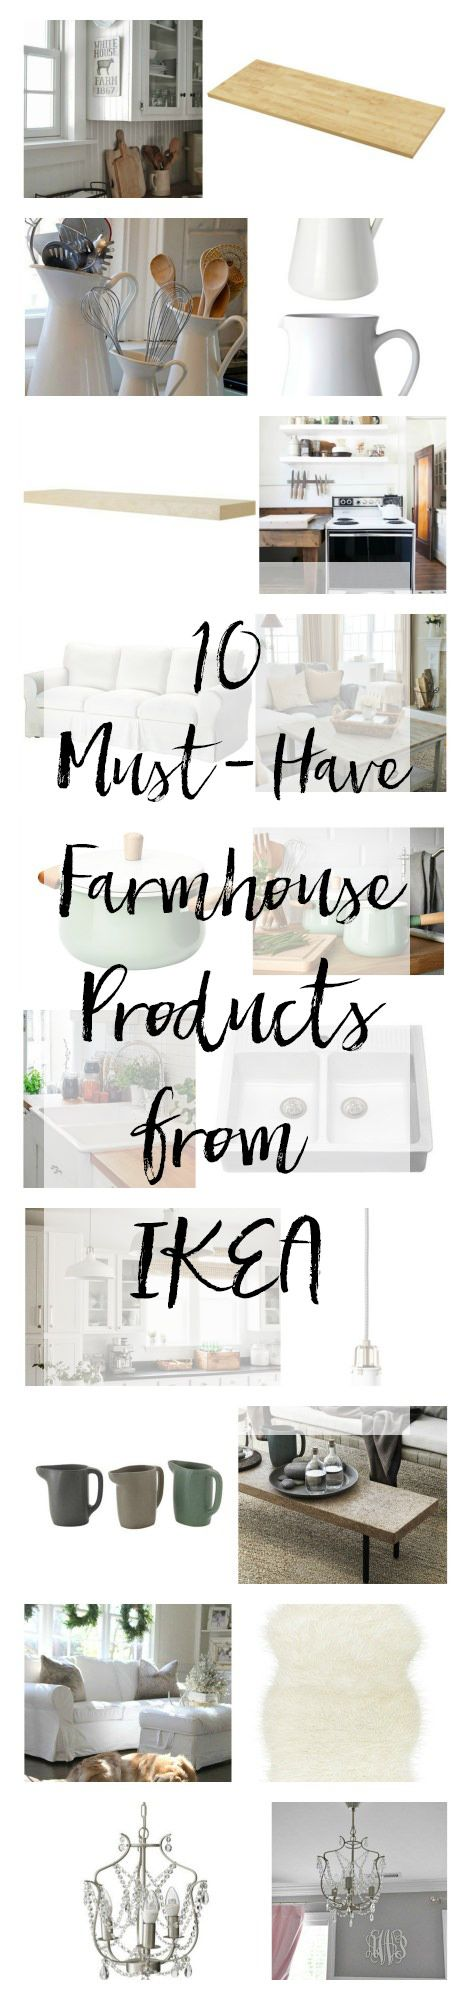 10 Must-Have Farmhouse Products to Buy at IKEA - Best things to buy at IKEA // Farmhouse Decor over at Lynzy & Co.